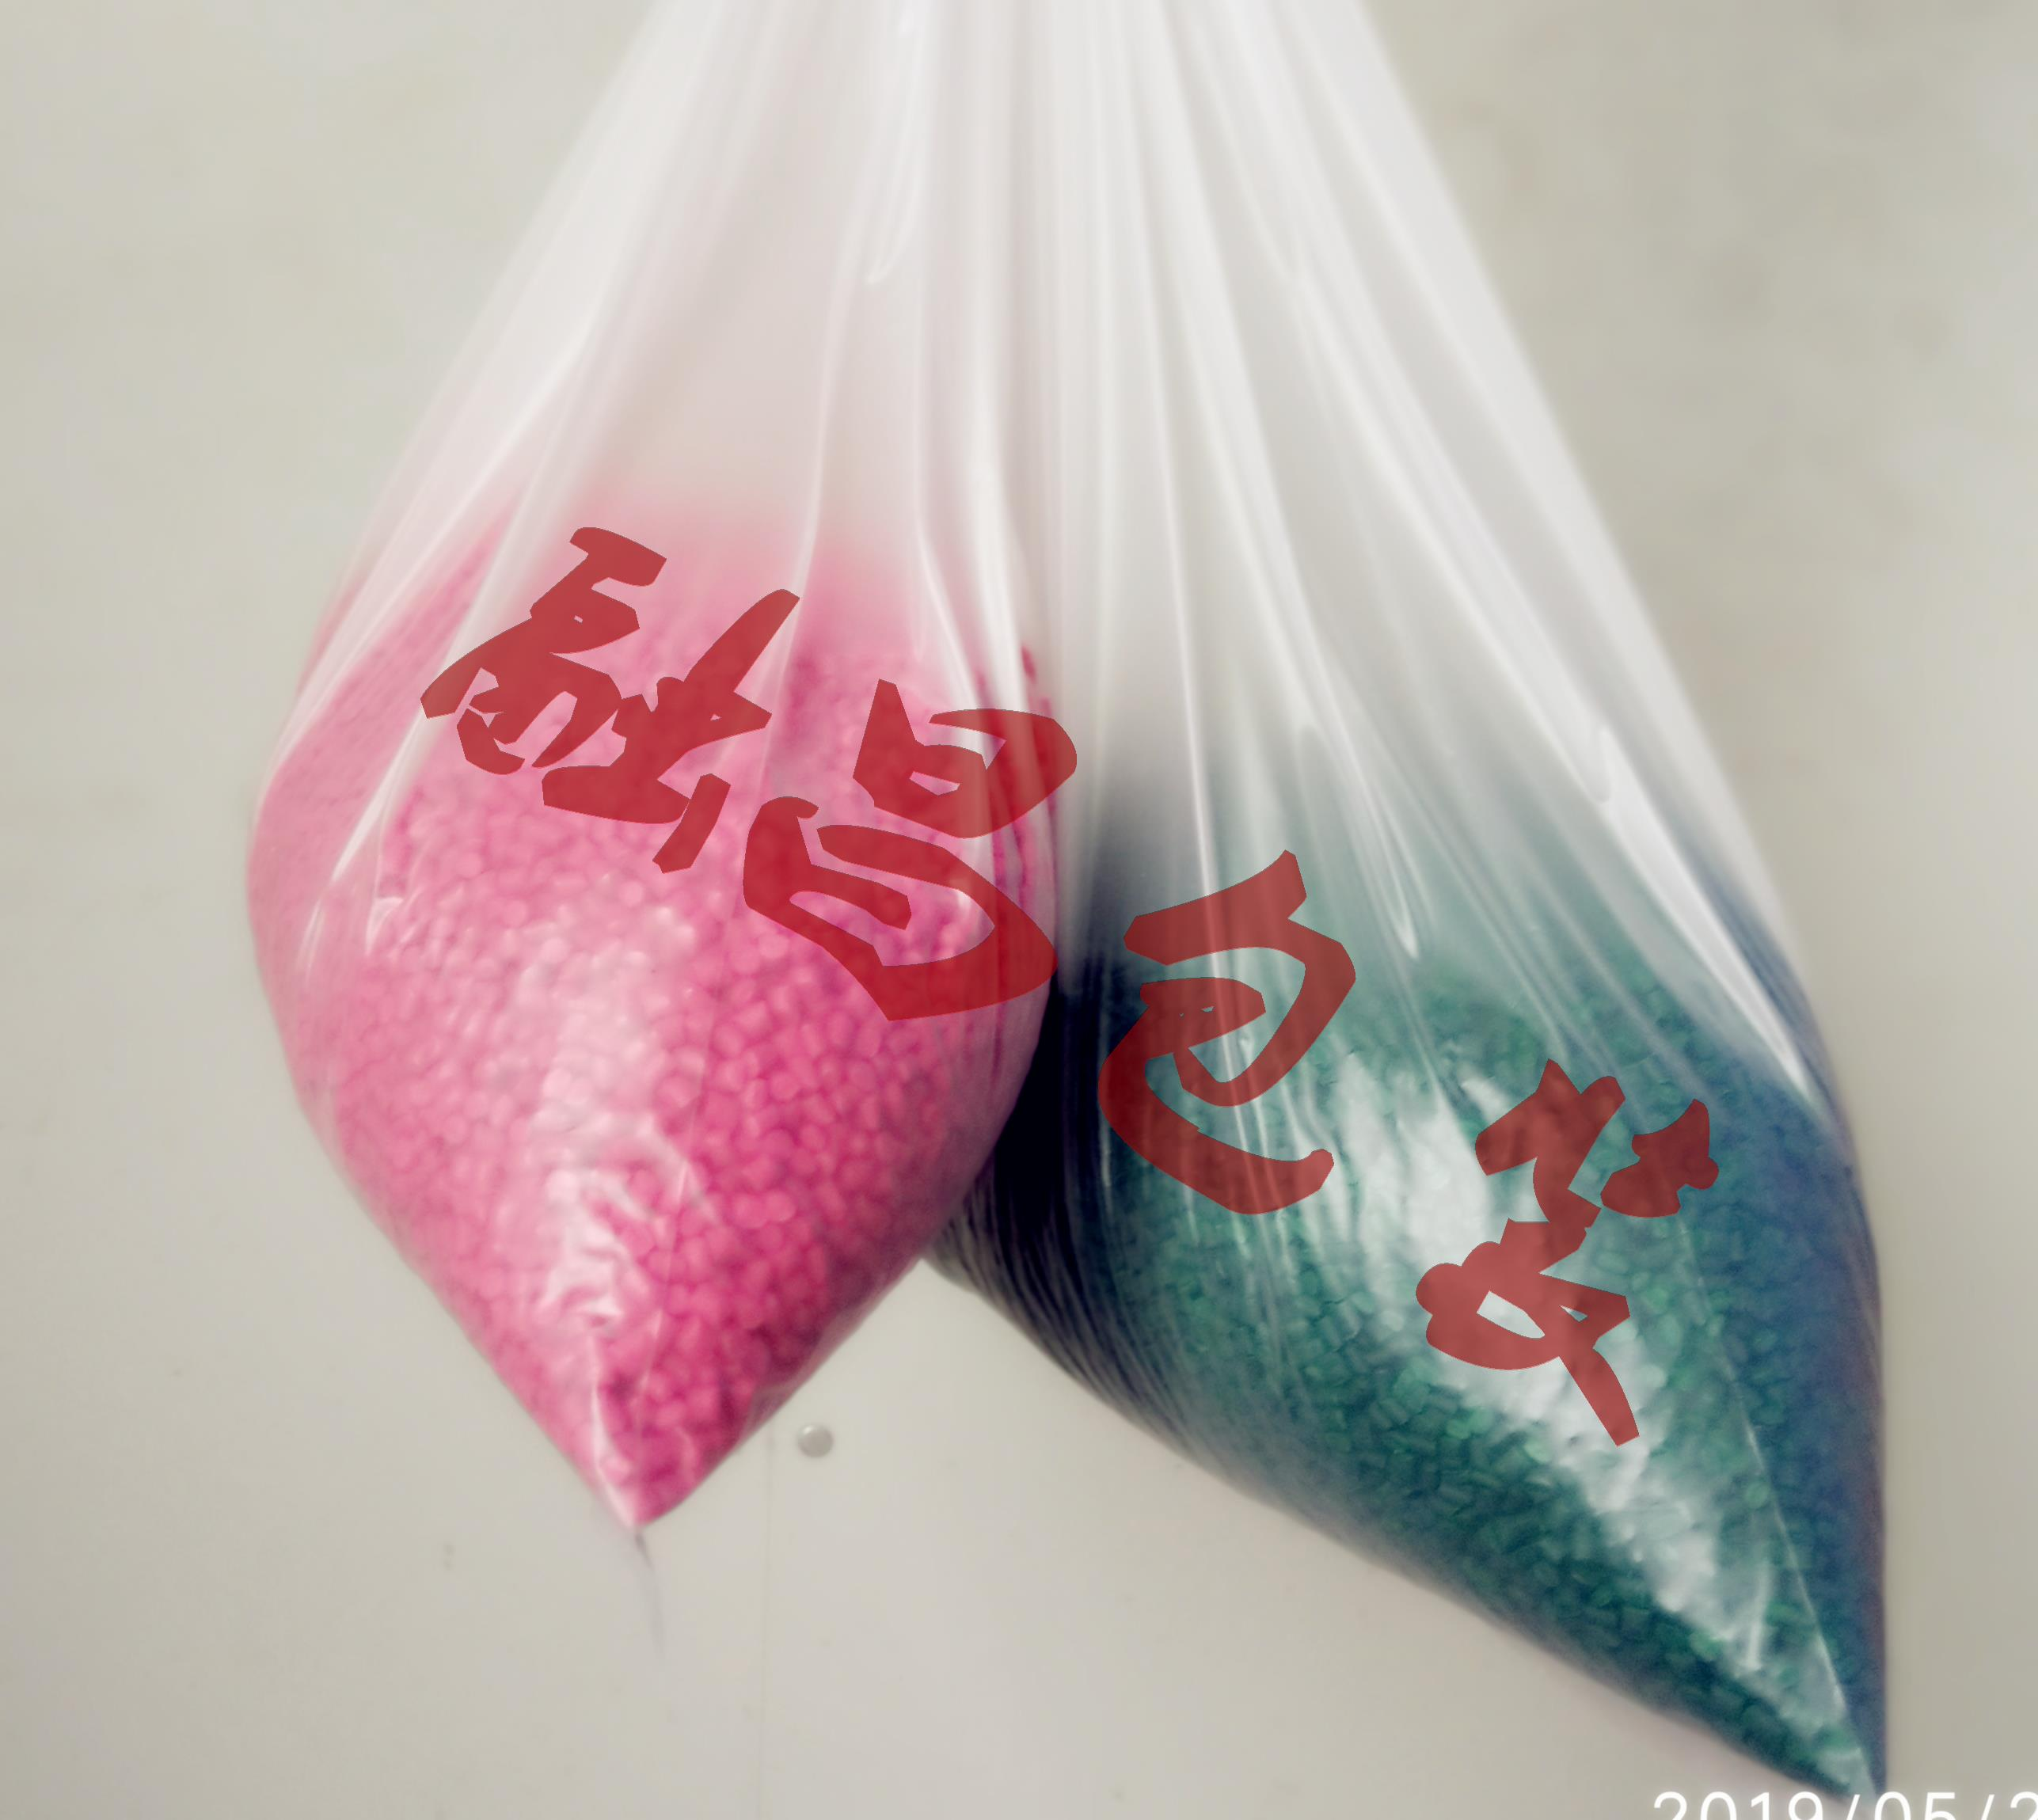 75℃ Melting Point Plastic Bag